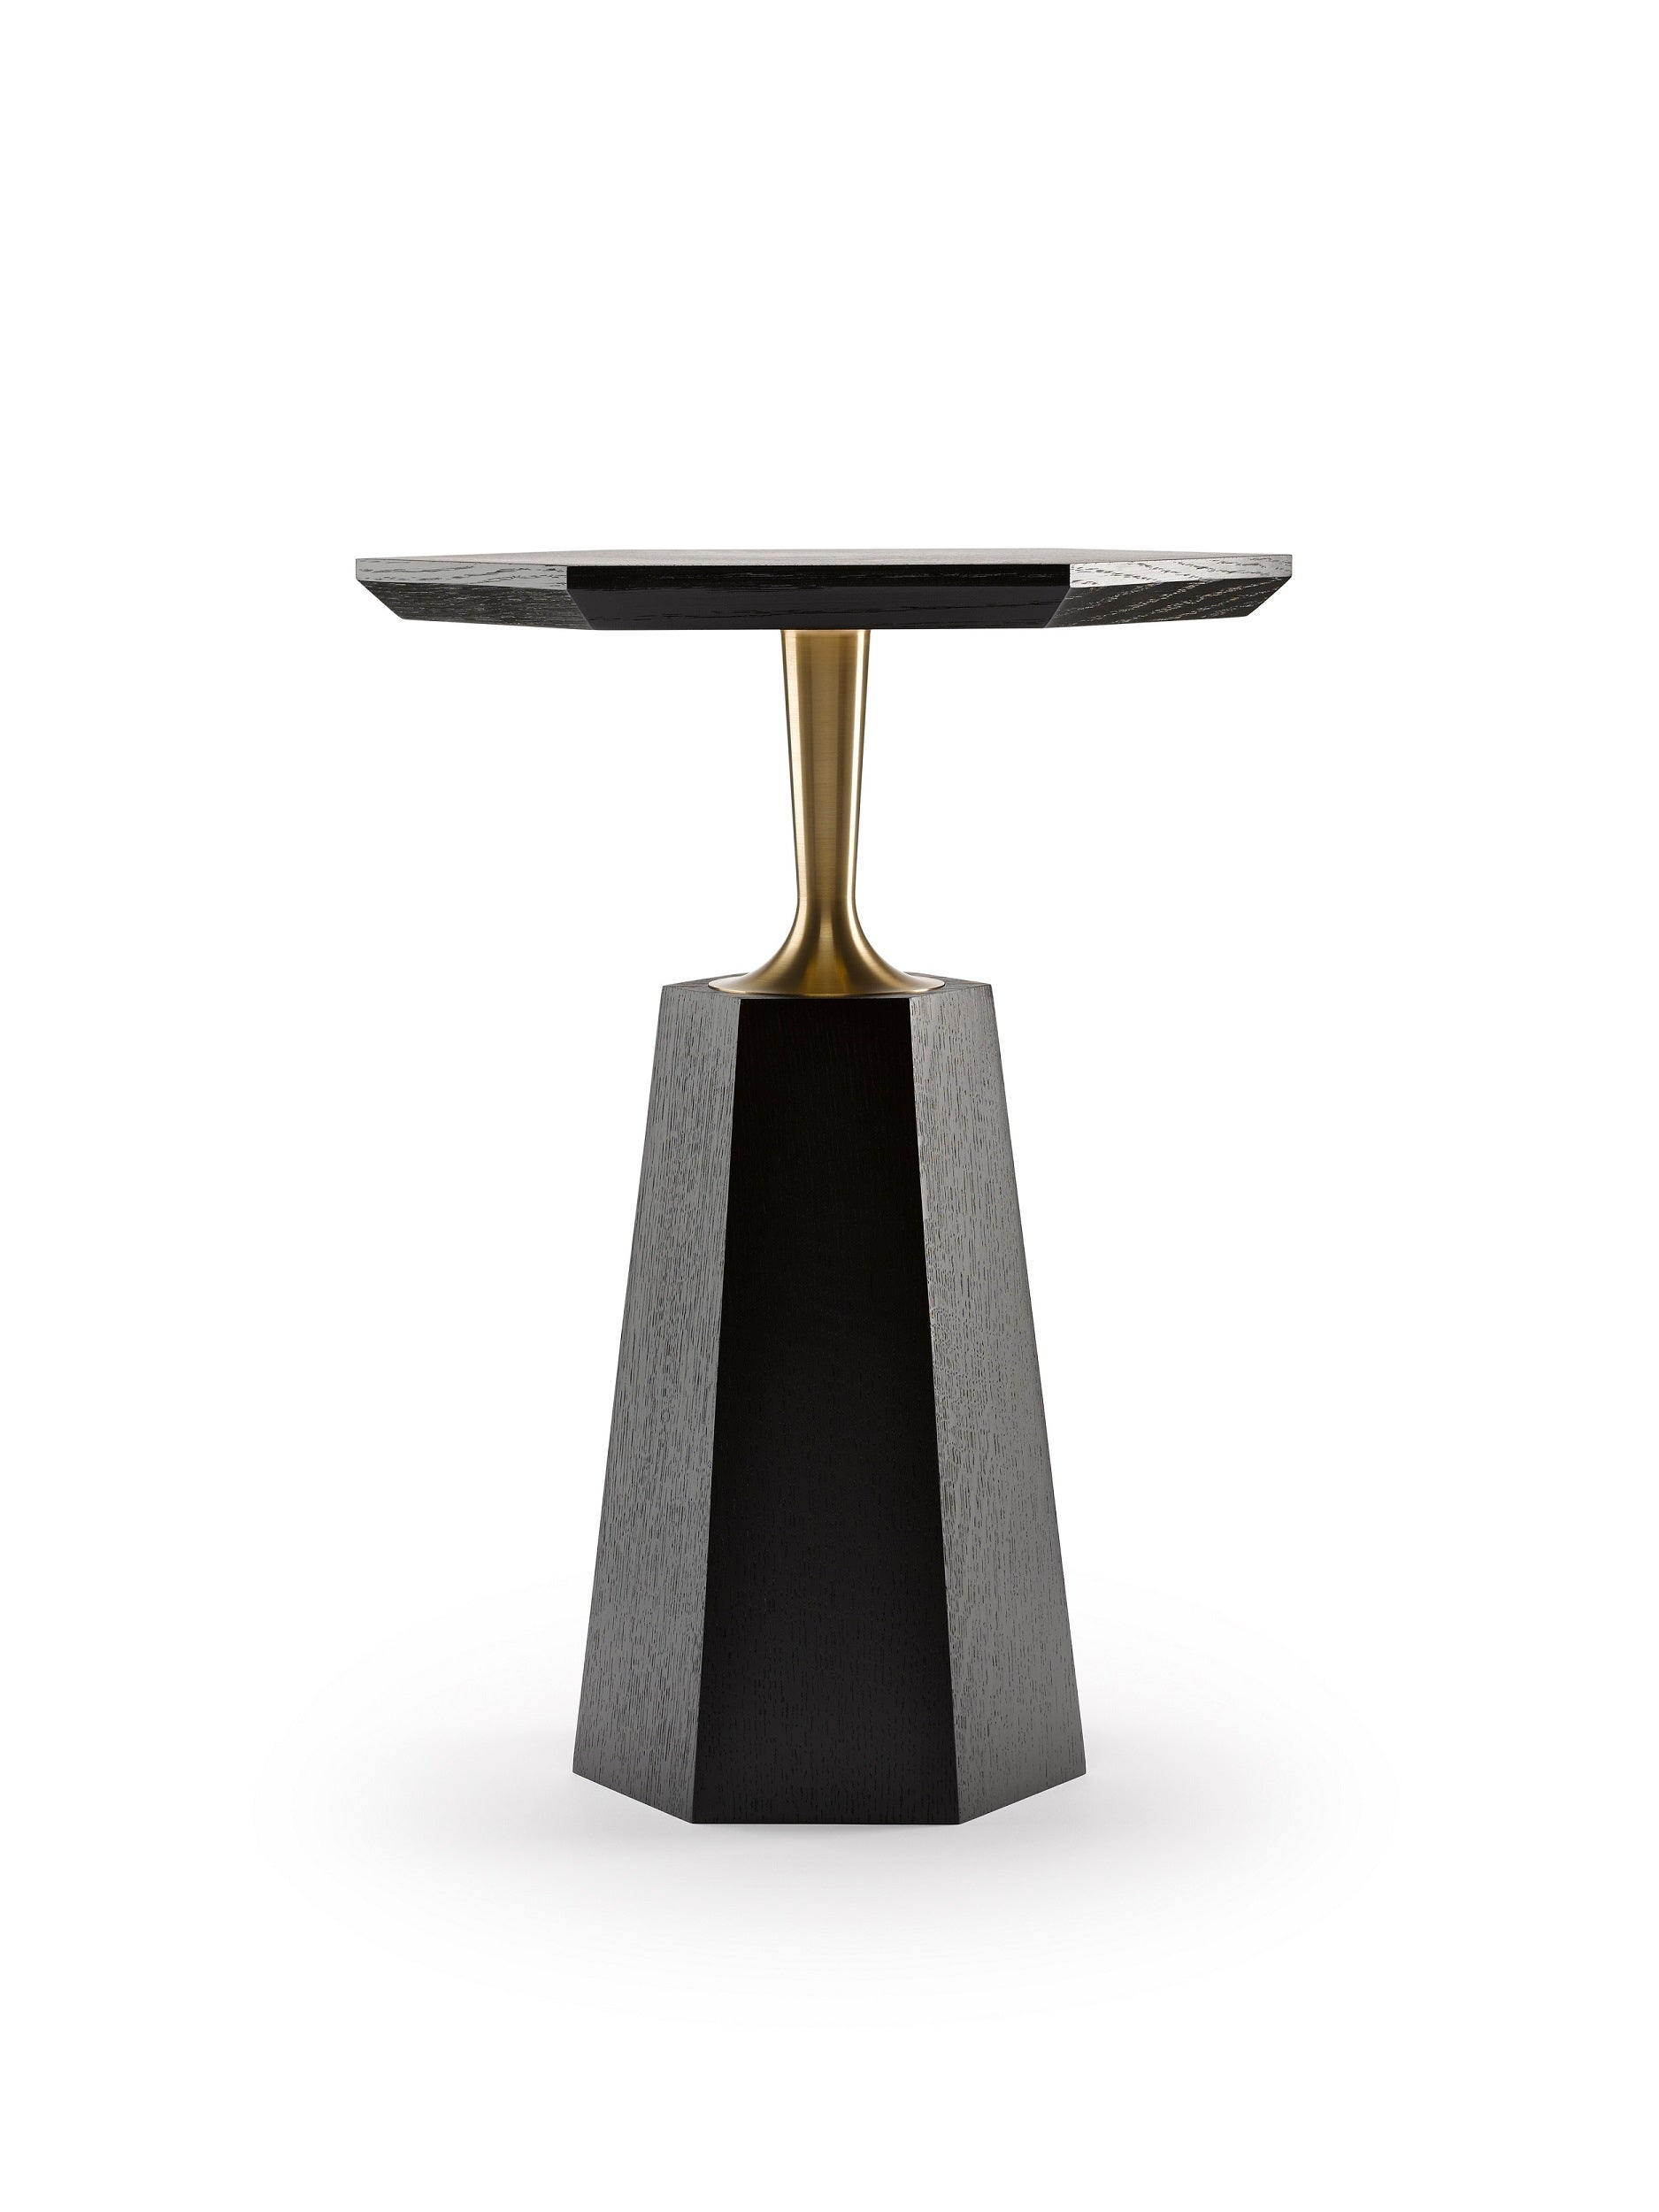 Ordinaire Contemporary Hex Side Table In Oak Or Walnut With Machined Brass For Sale  At 1stdibs